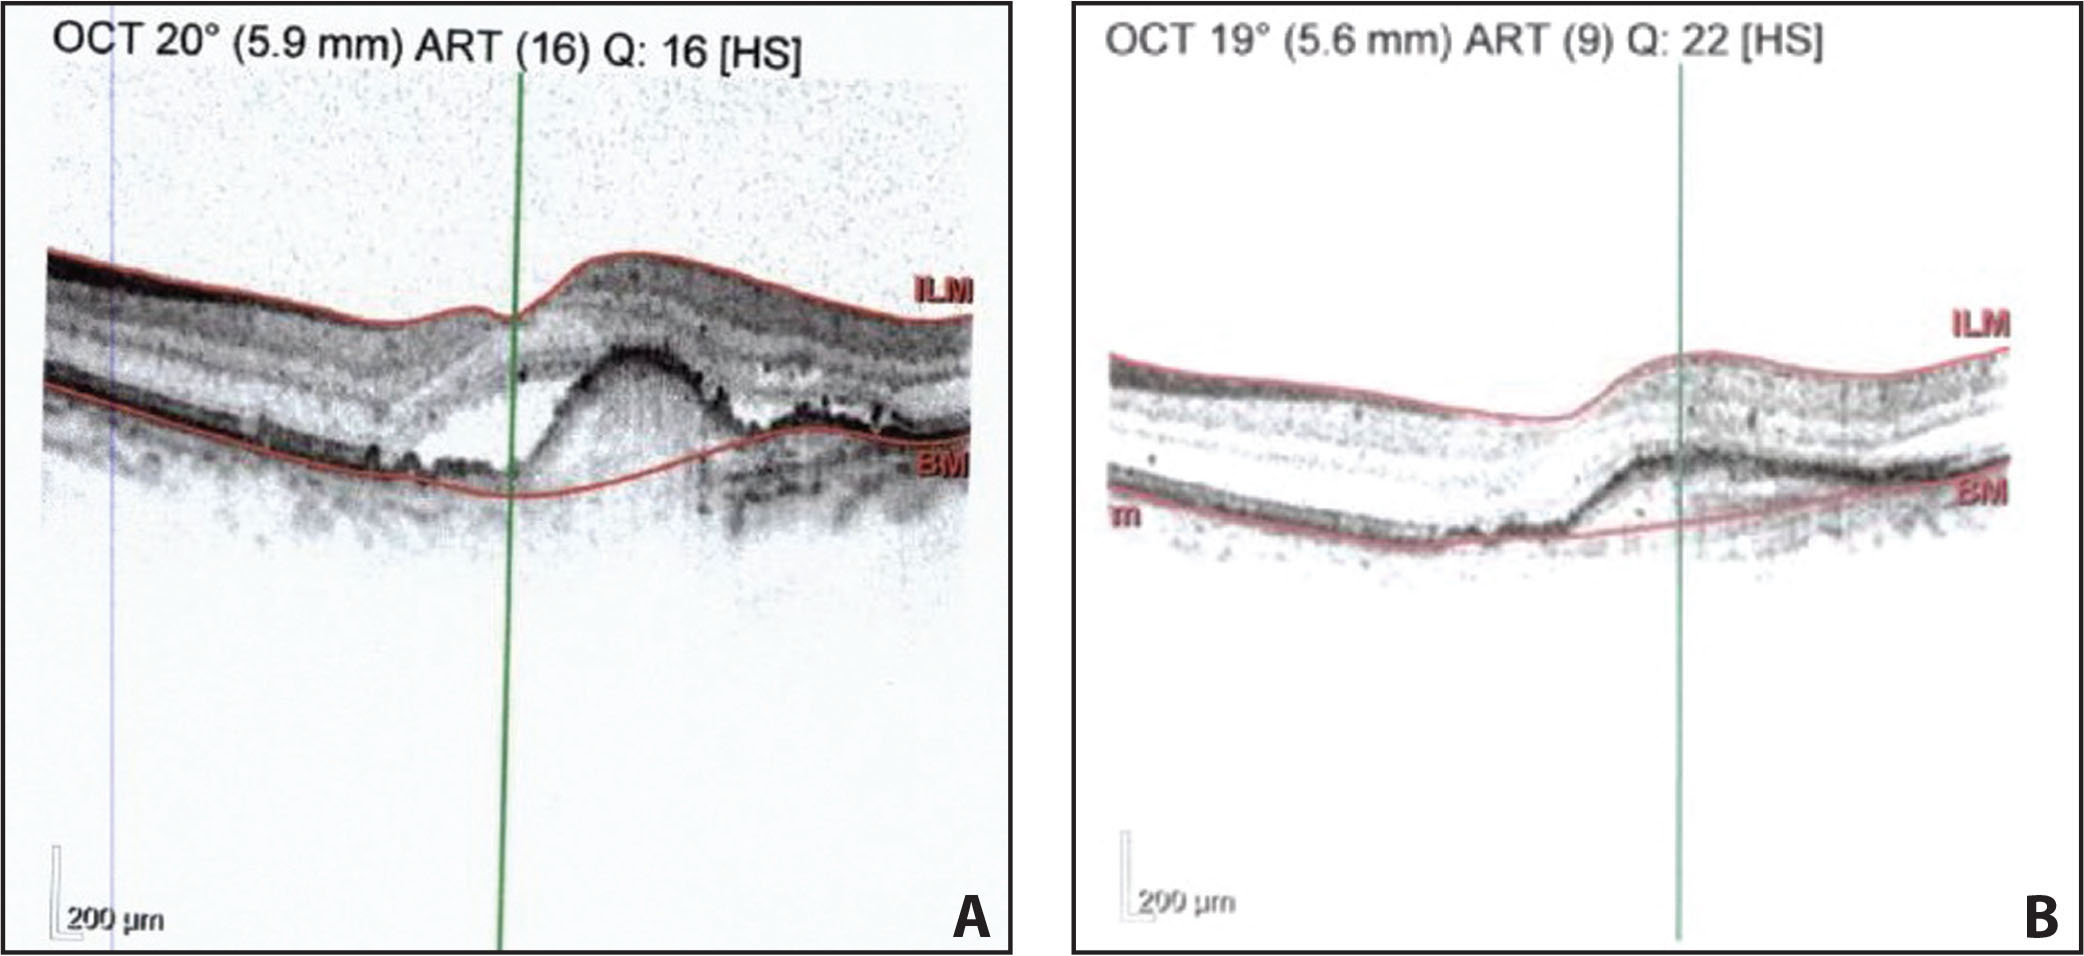 Optical coherence tomography resolution of subretinal fluid in patient B before (A) and after (B) treatment with aflibercept.